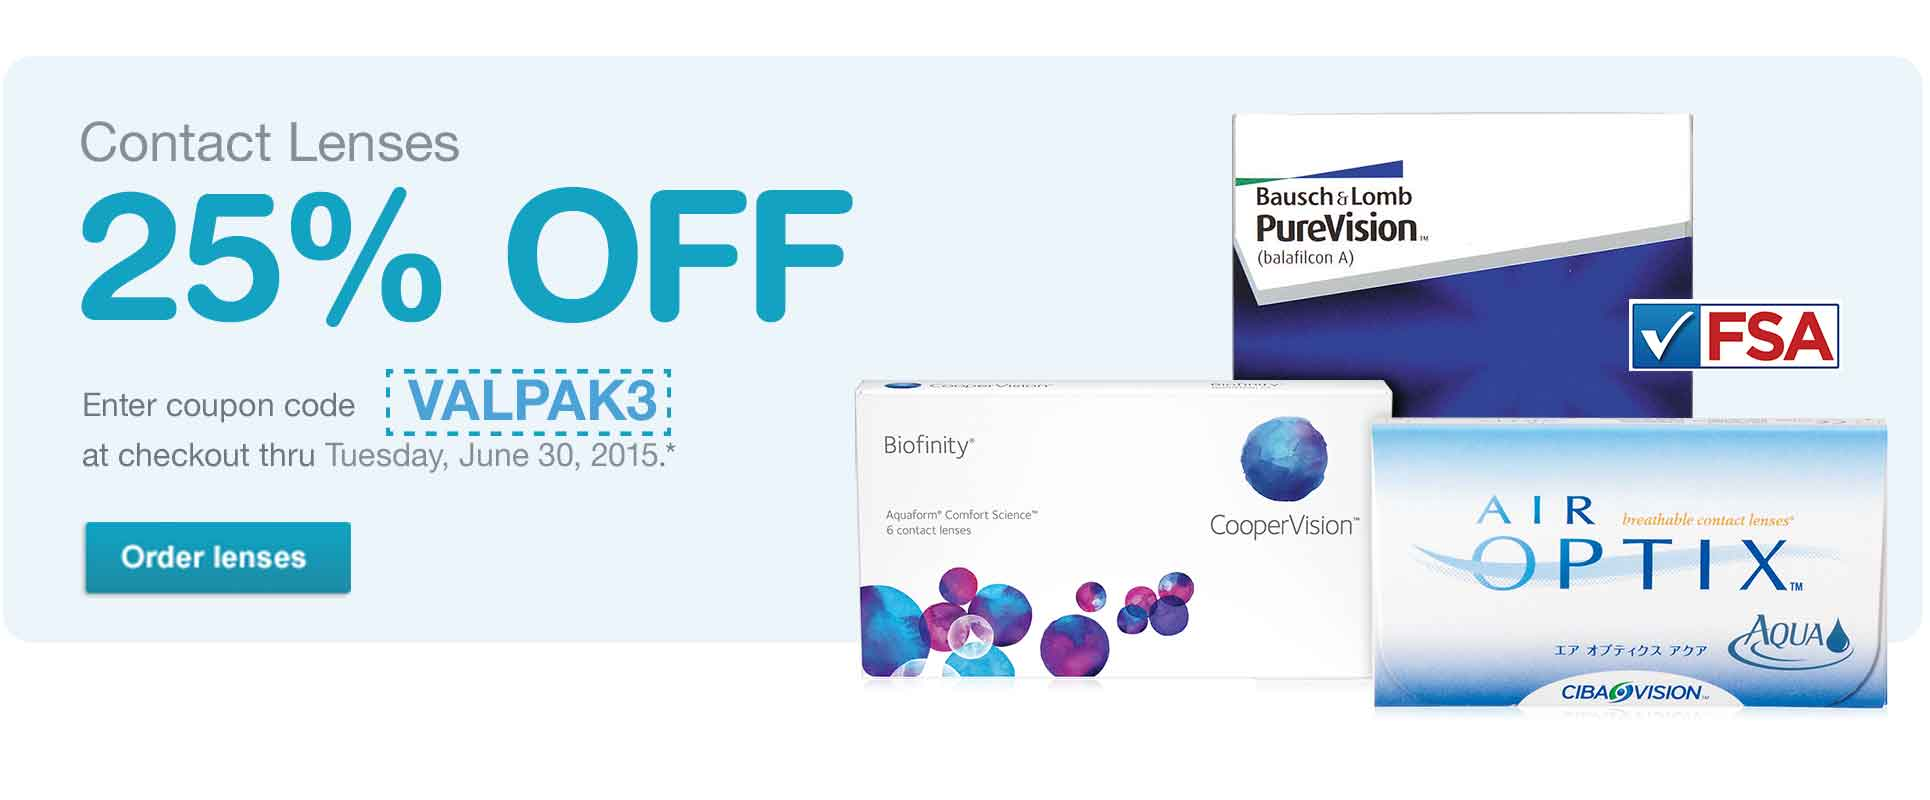 Contact Lenses 25% off with code VALPAK3 thru 6/30/15*. Order lenses.